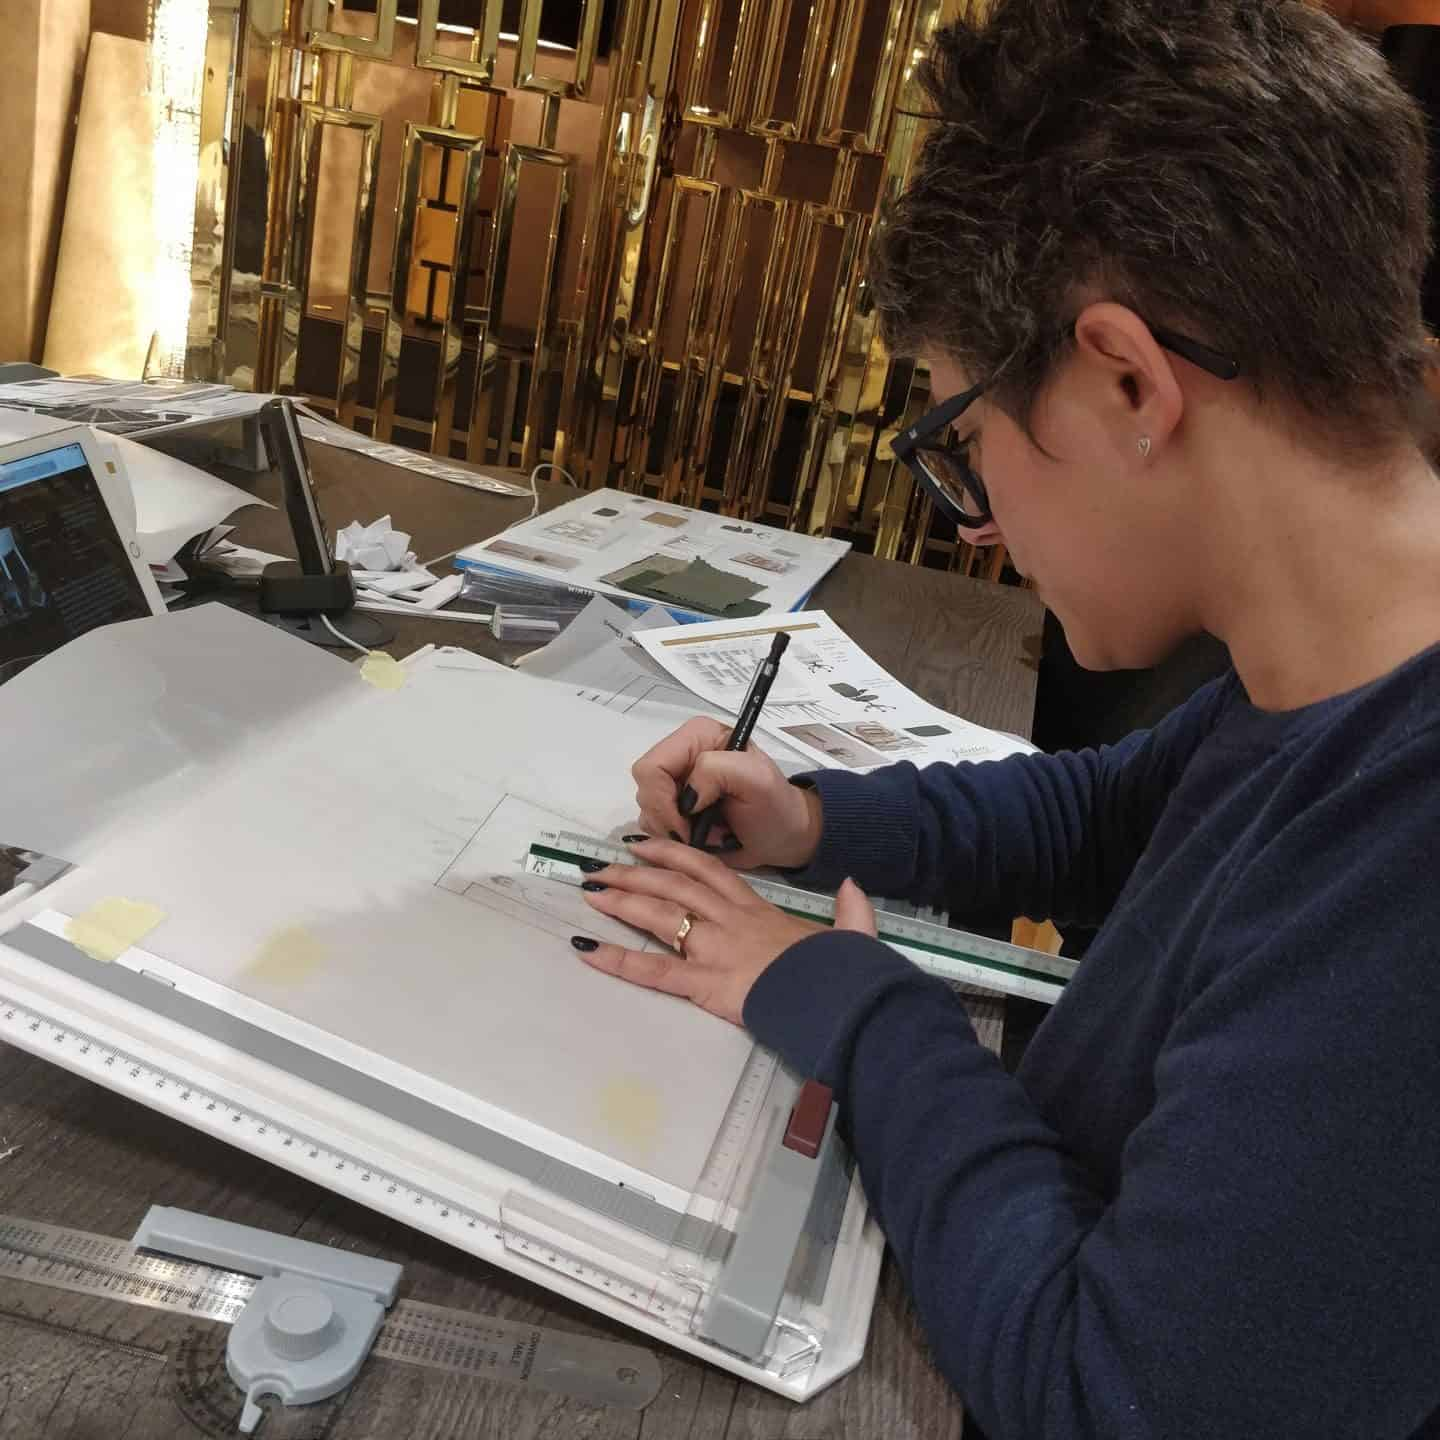 Technical drawing at Juliette's Interior Design School in London